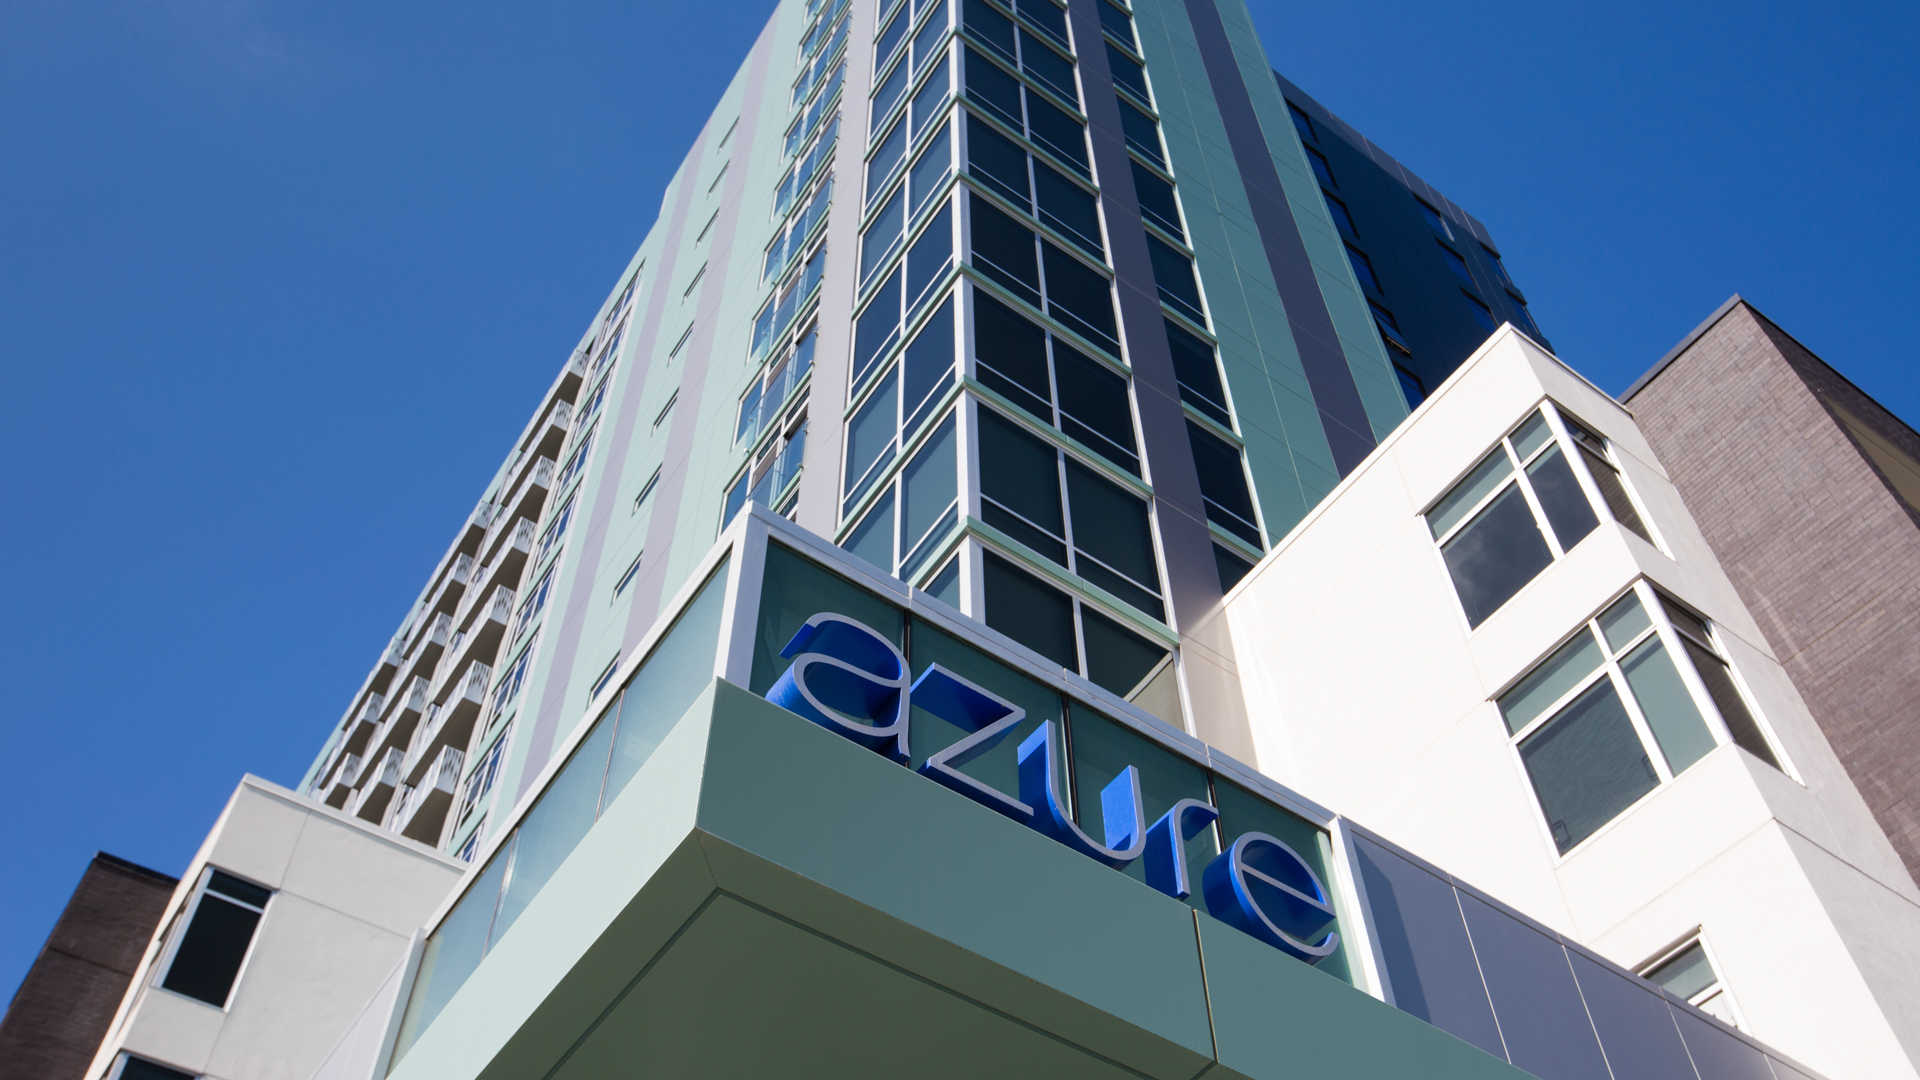 Azure apartments building